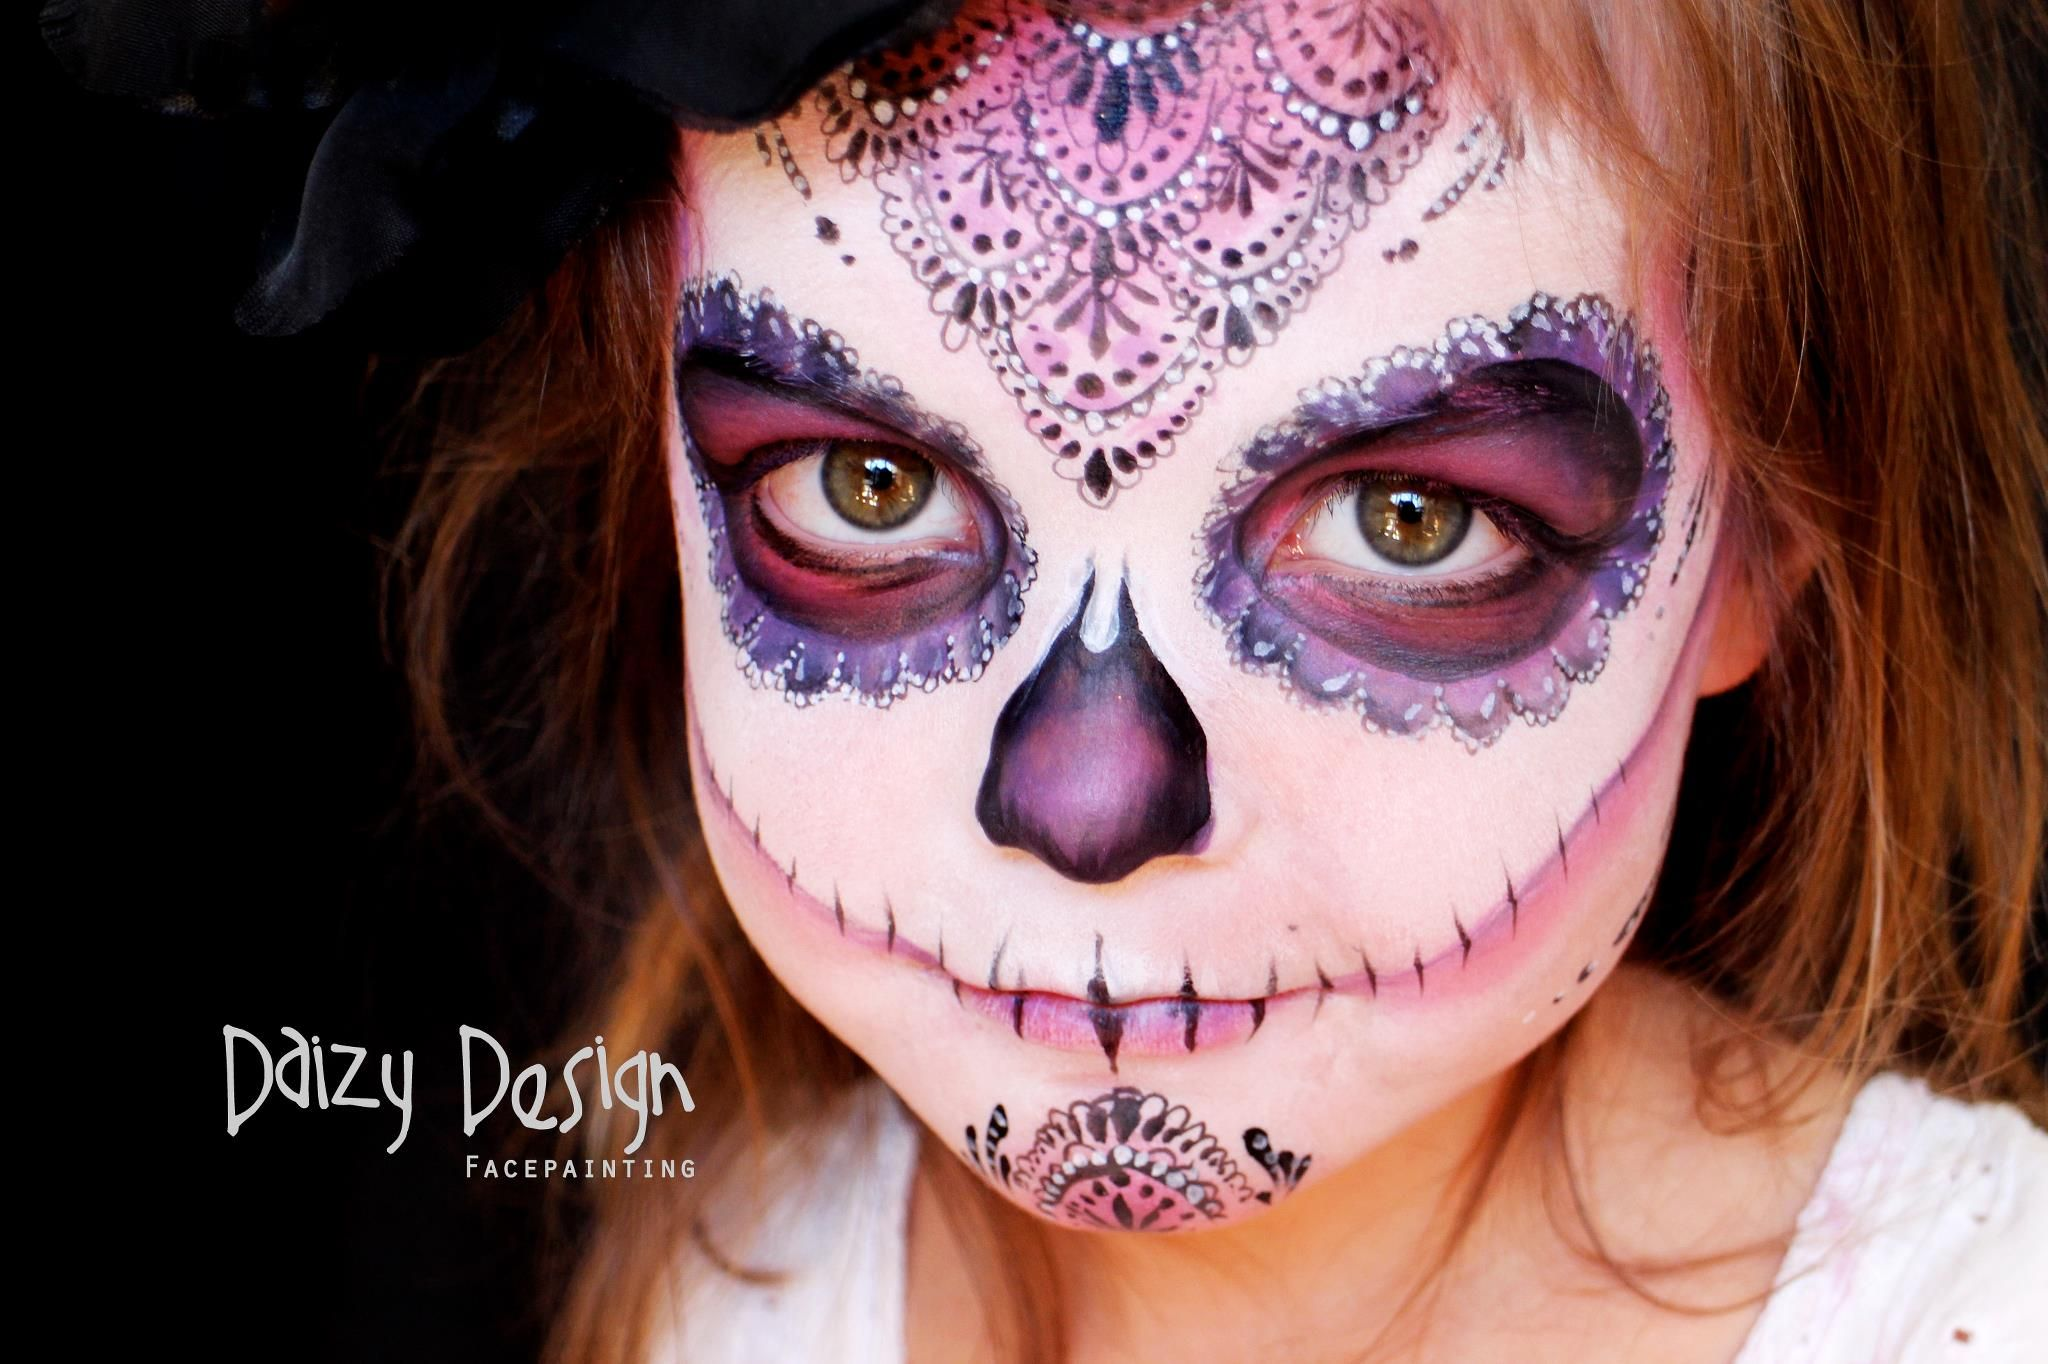 (99) Daizy Design Face Painting